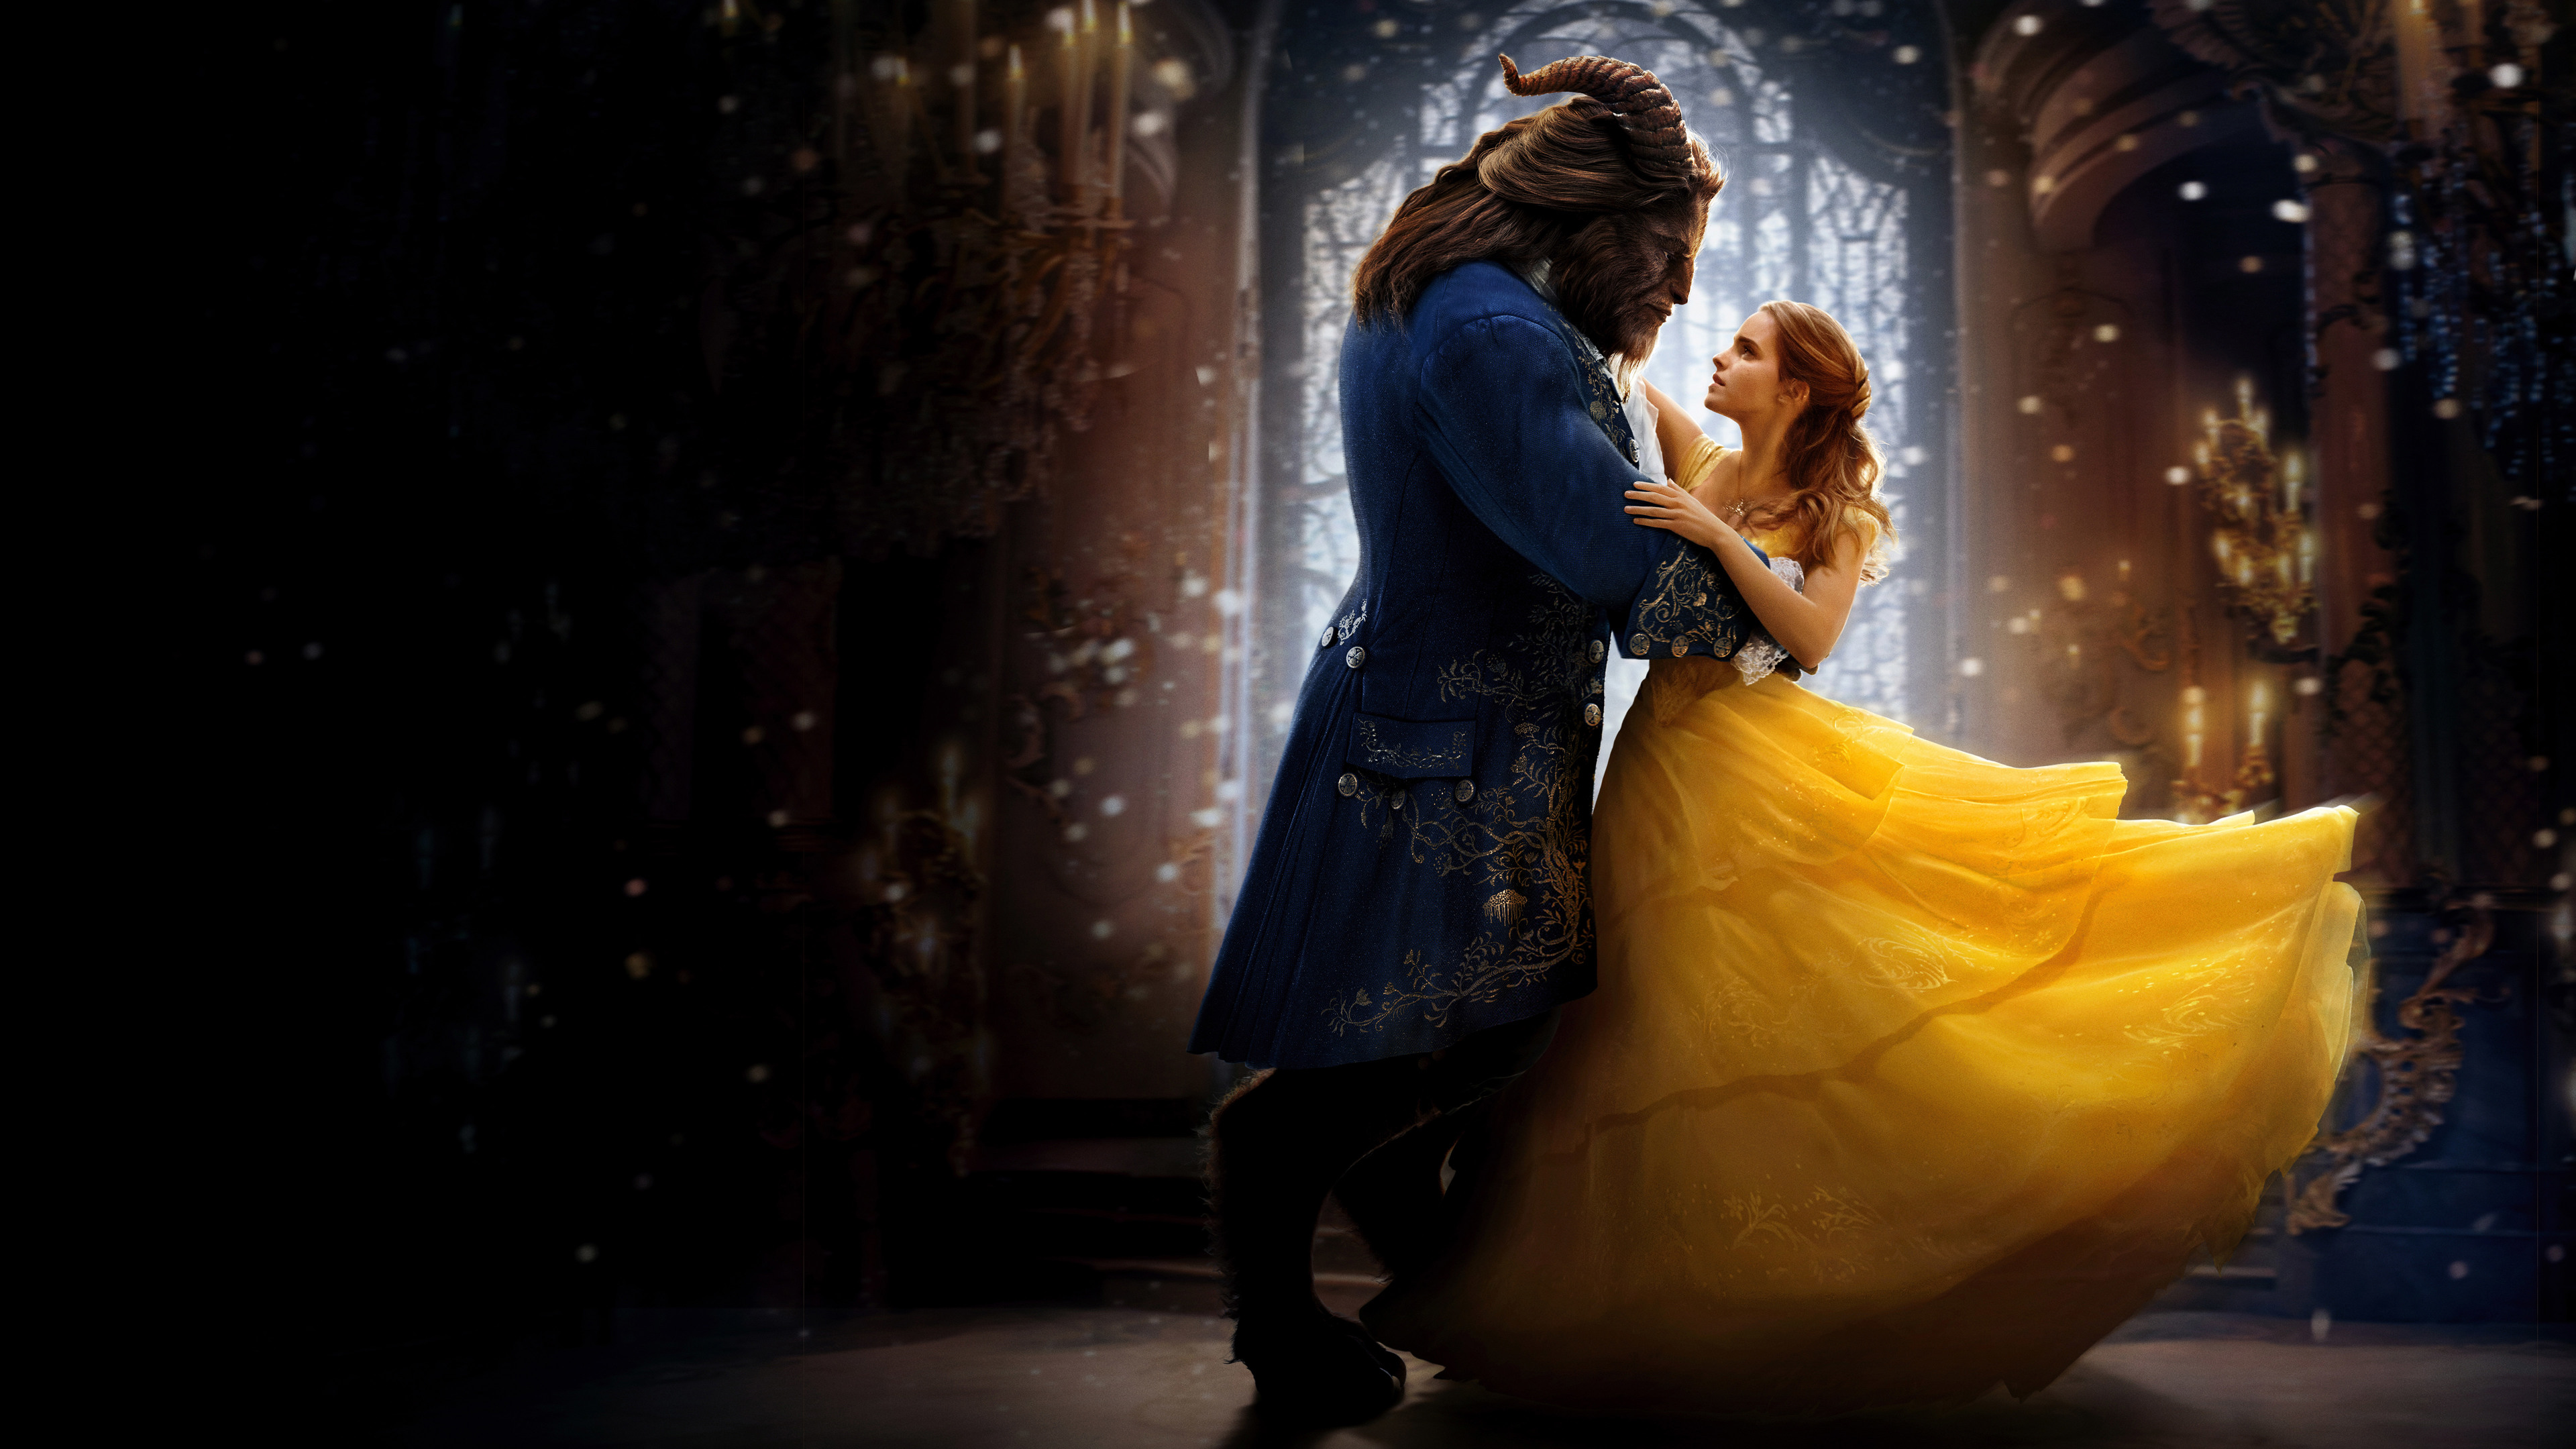 beauty and the beast wallpaper 4k